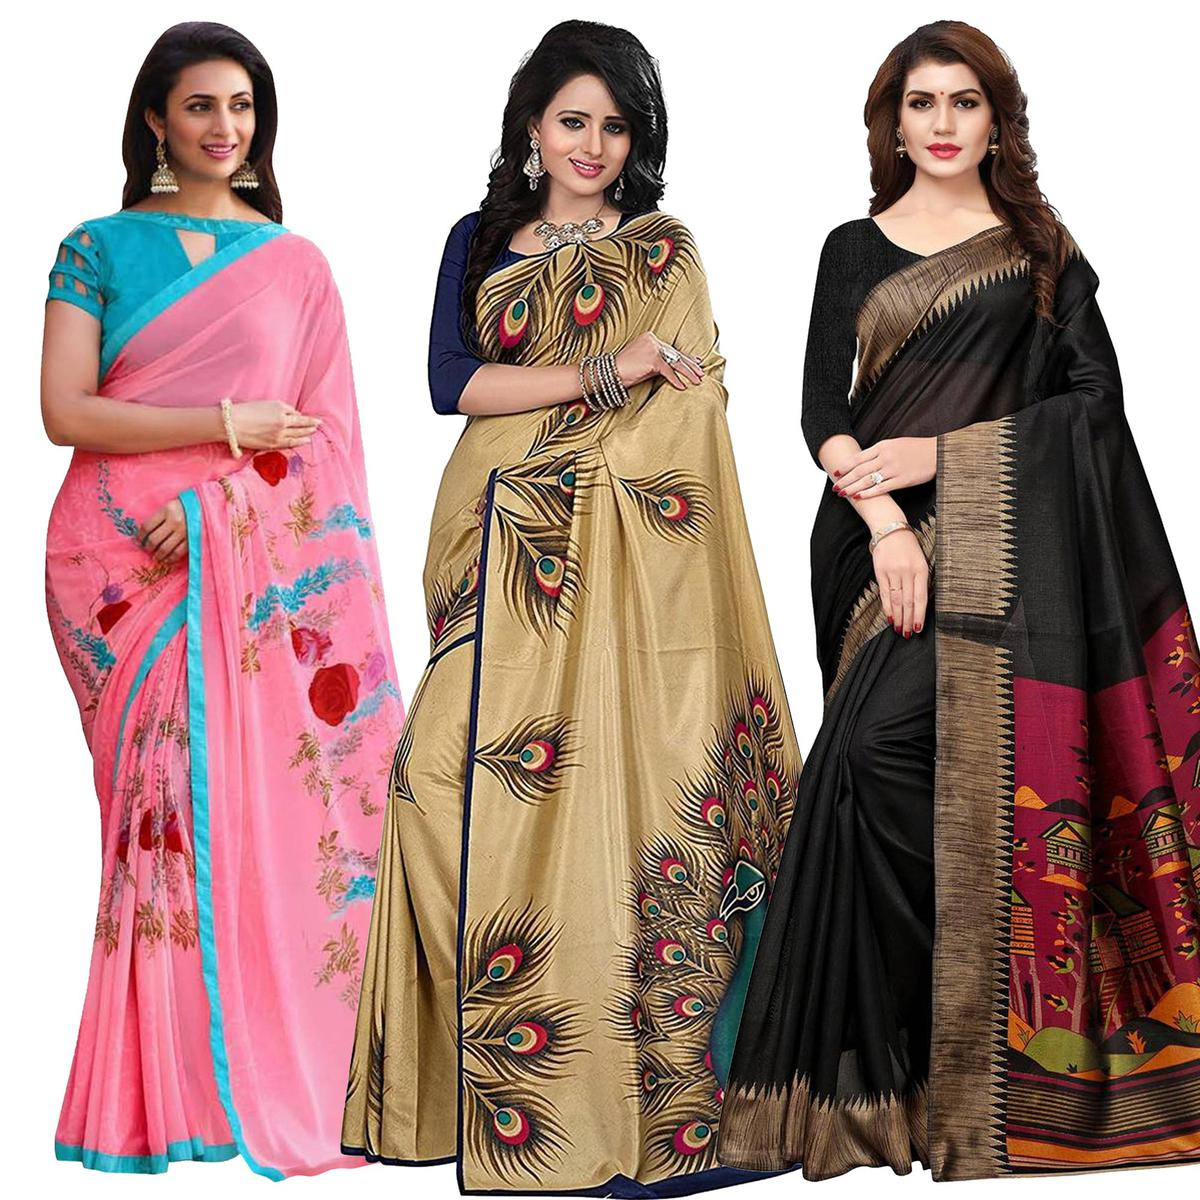 Ethnic Casual Printed Georgette-Art Silk Saree - Pack of 3